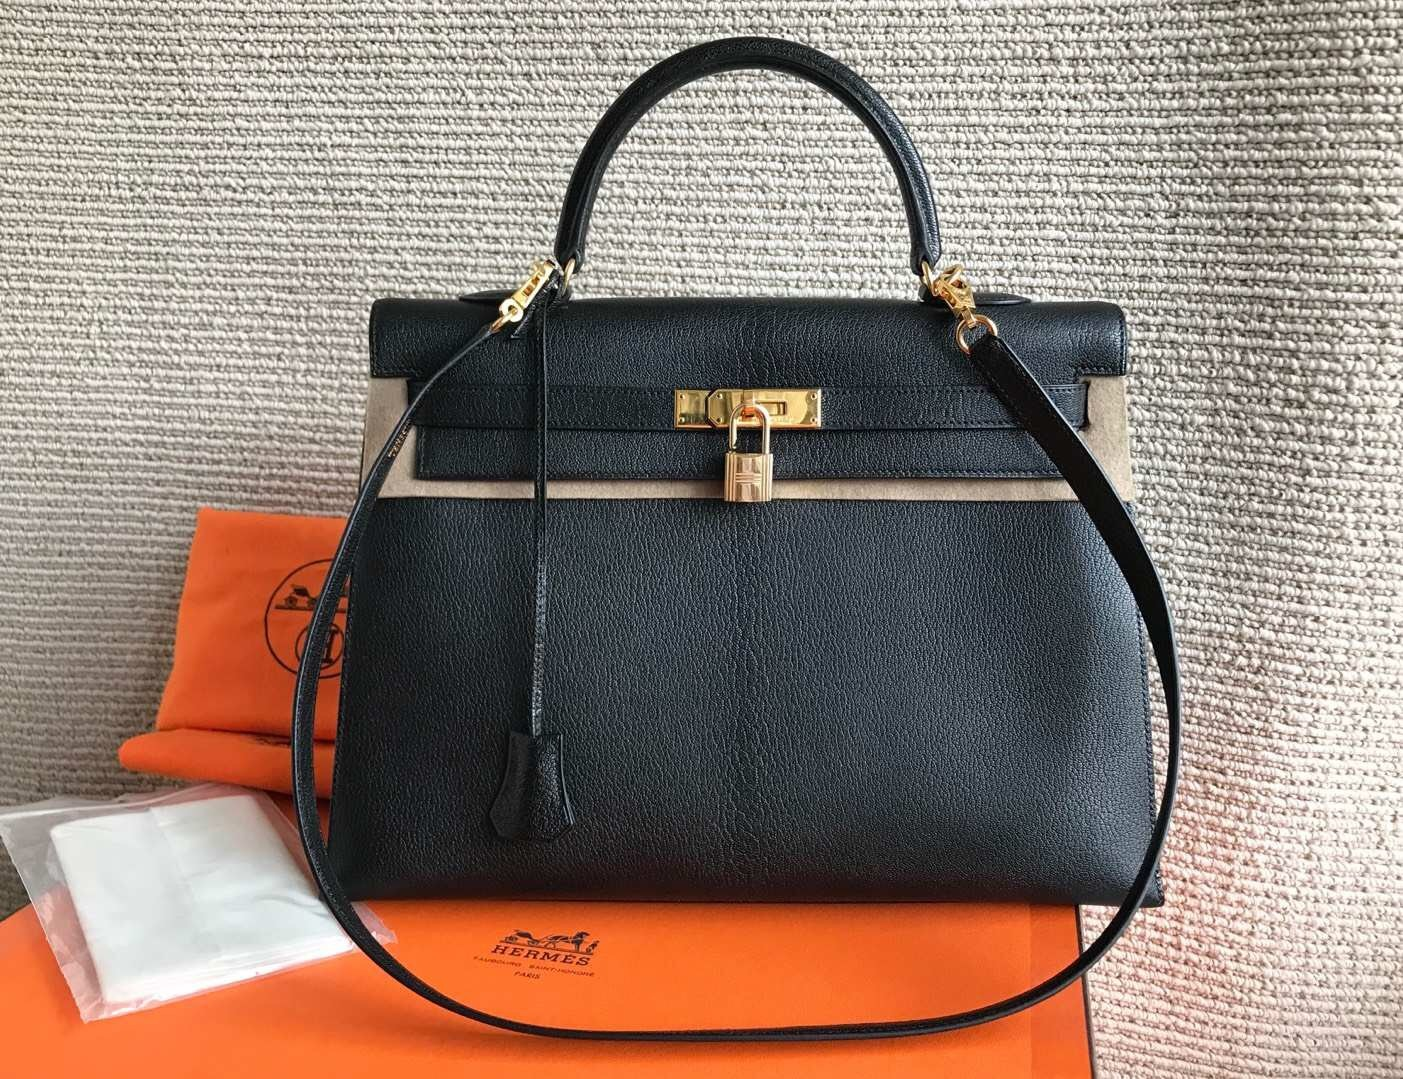 100% Authentic HERMES Black KELLY BAG GHW